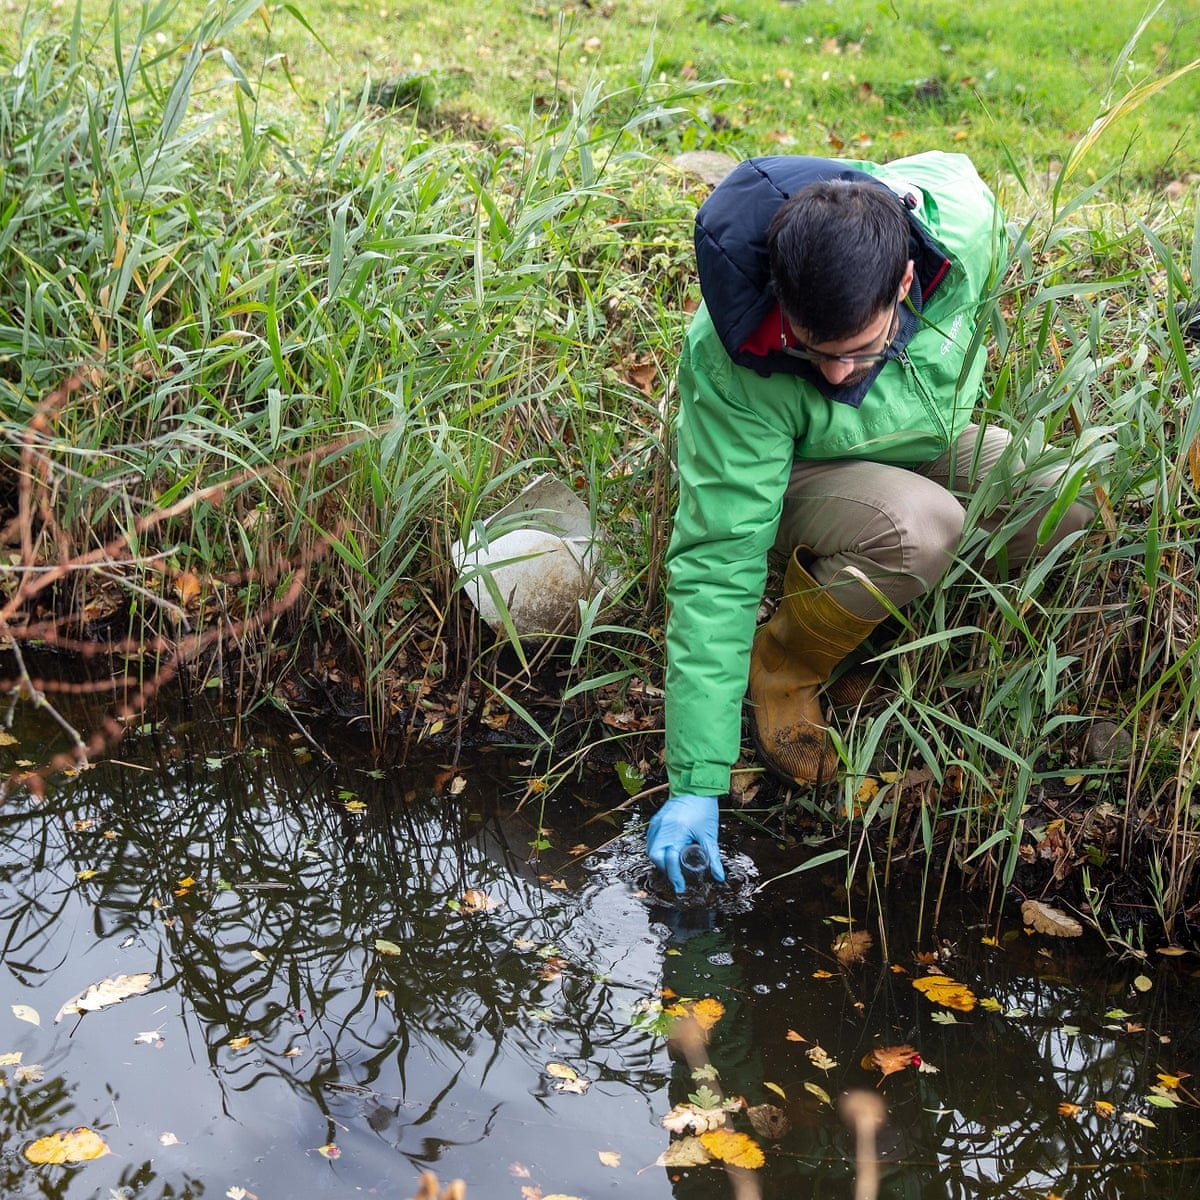 Pesticides and antibiotics polluting streams across Europe | Environment |  The Guardian